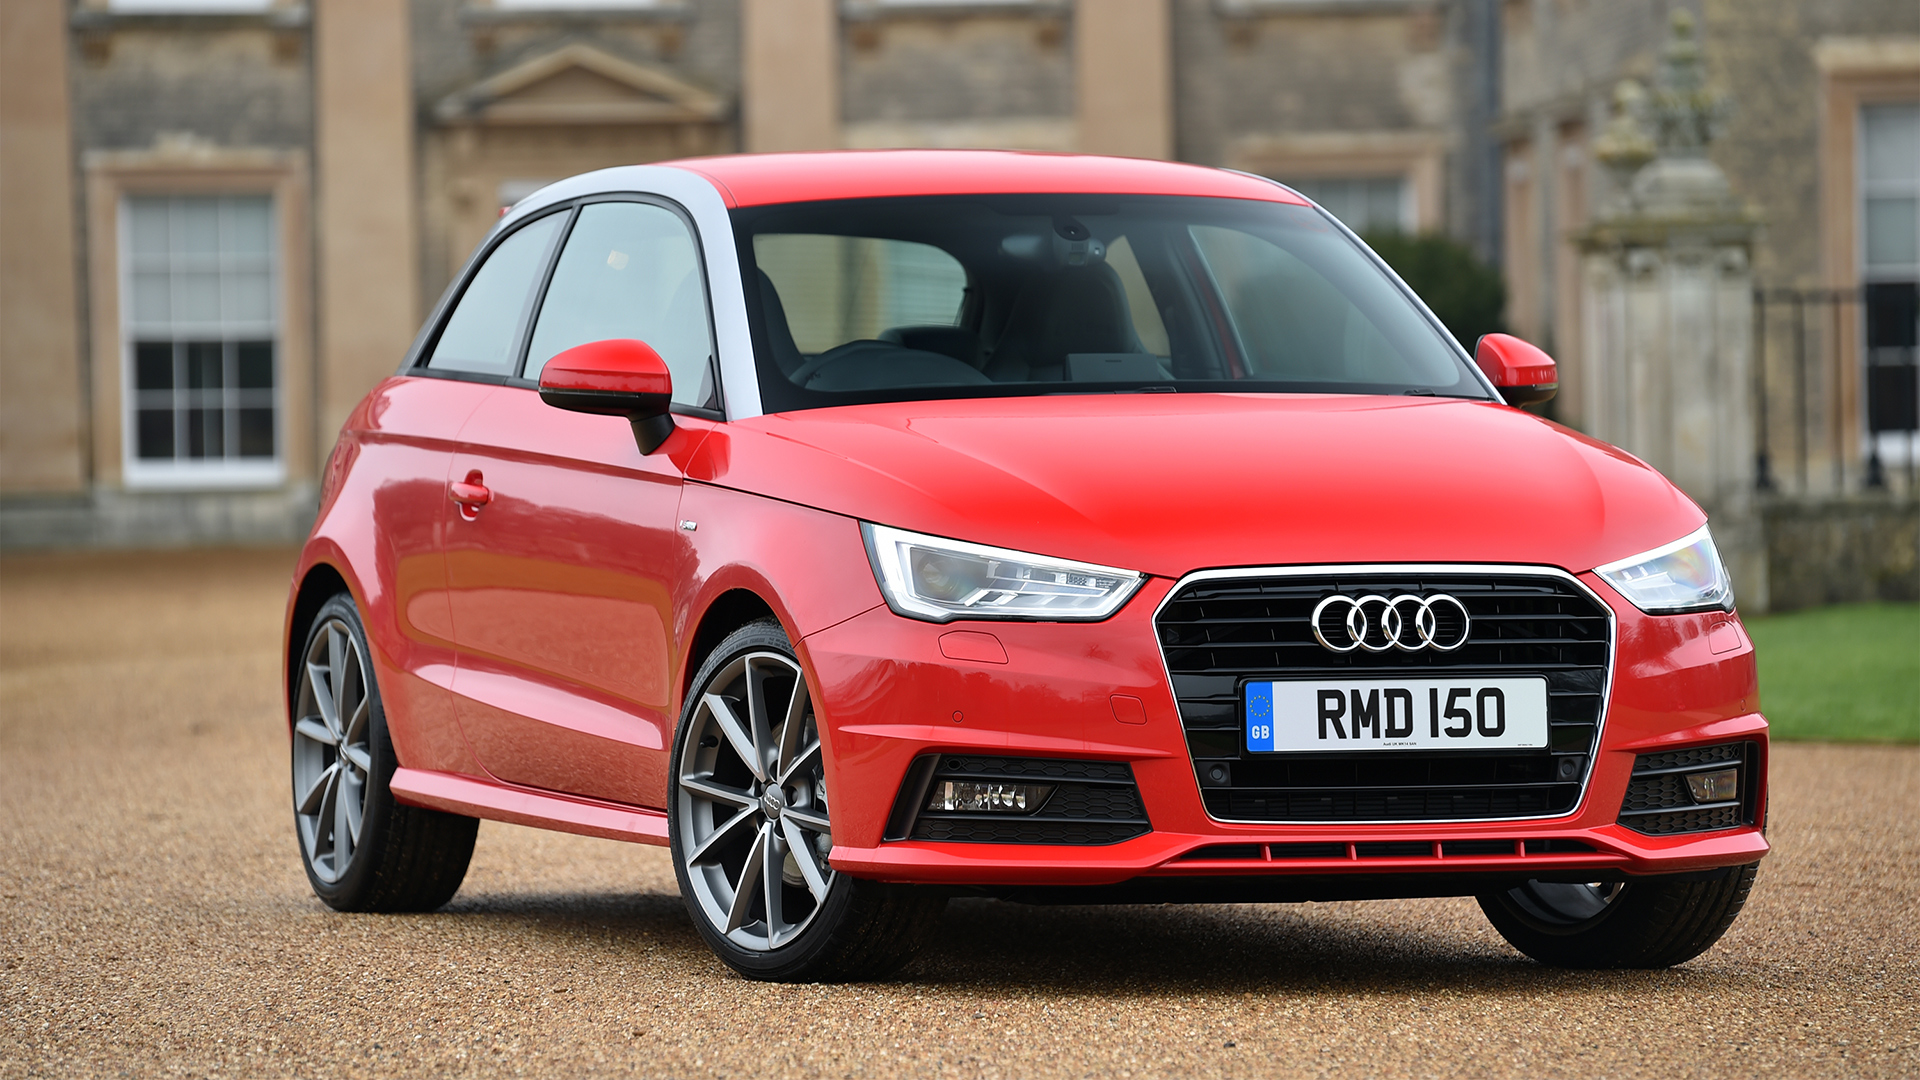 Audi A1 S Line Used Cars For Sale Autotrader Uk